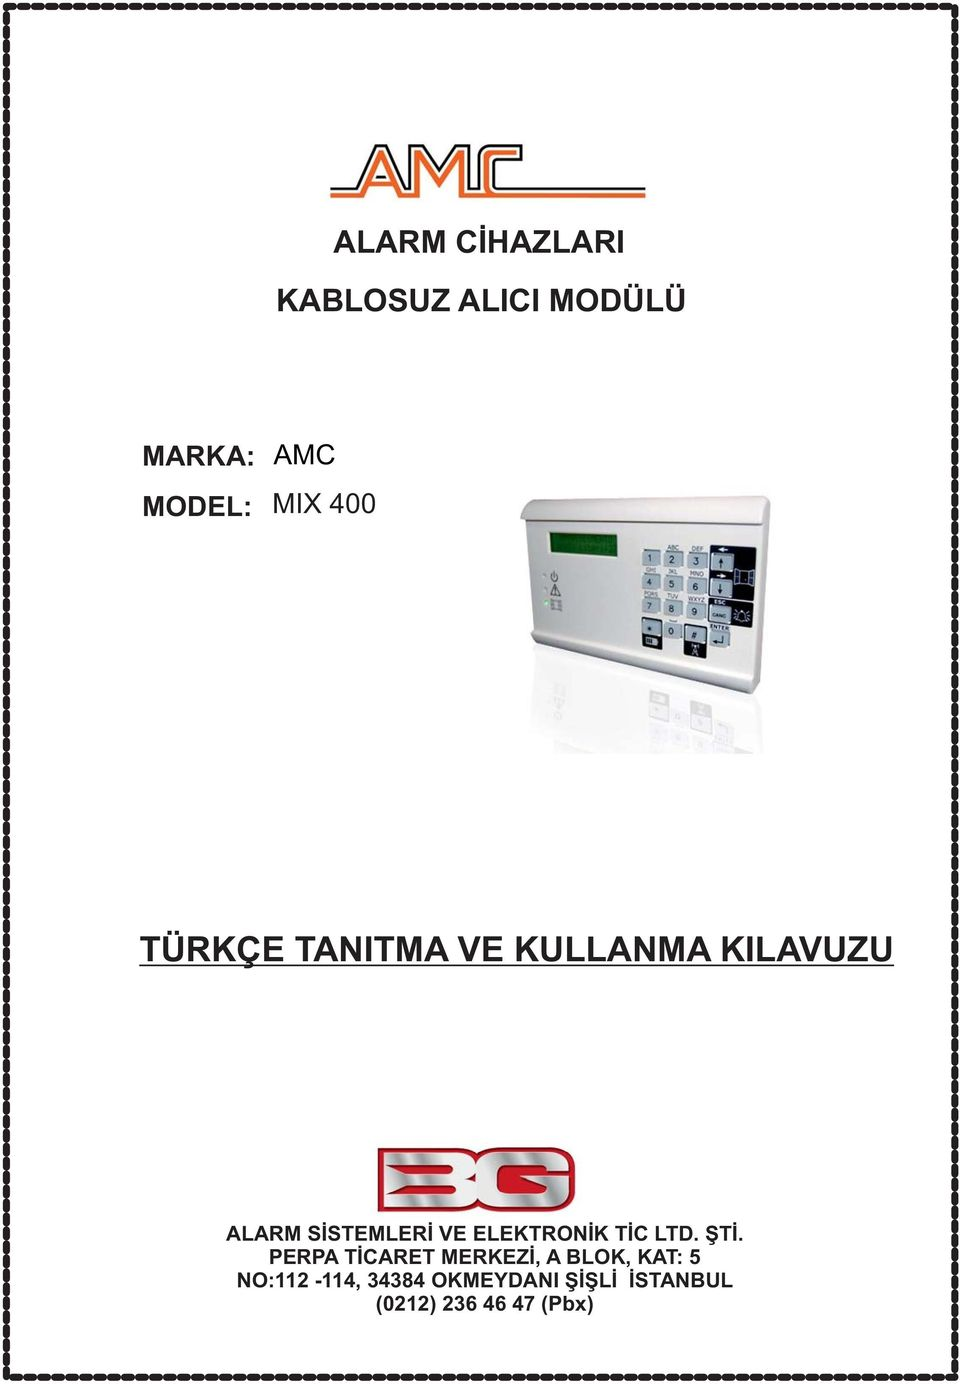 ELEKTRONİK TİC LTD. ŞTİ.